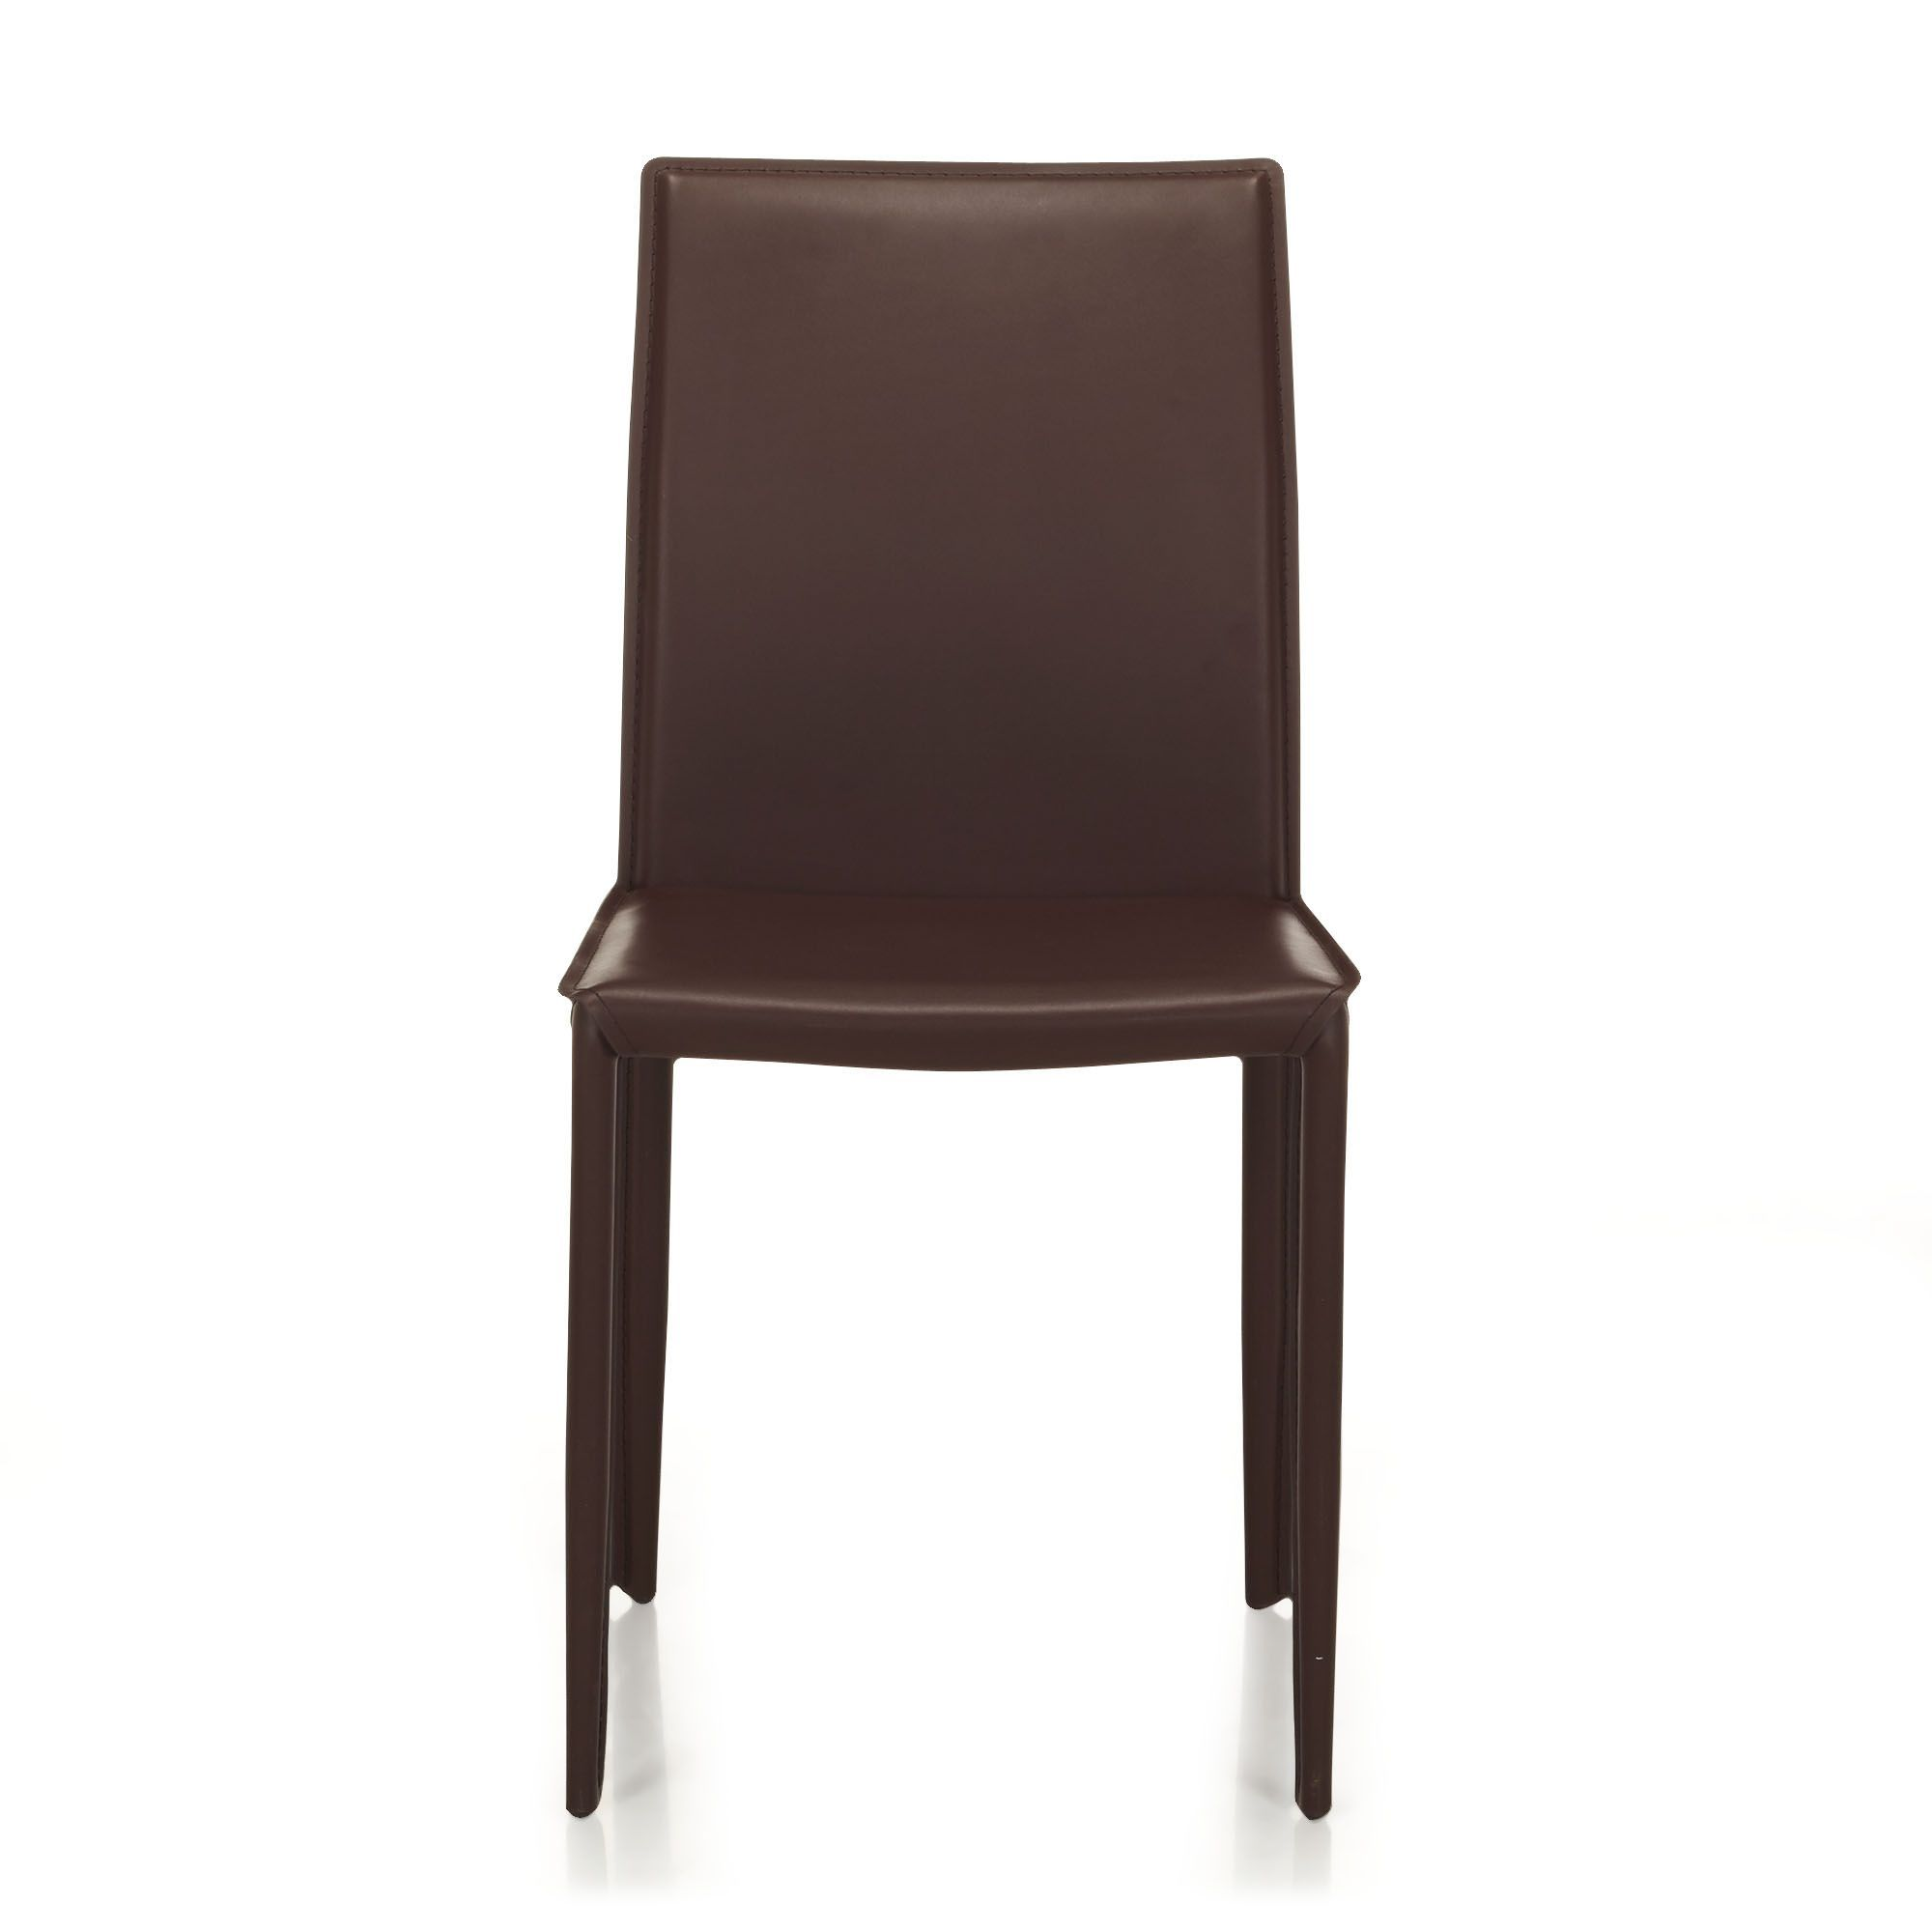 Chaise Table Salon Chaise En Croûte De Cuir Marron Marron Andrew Chaises